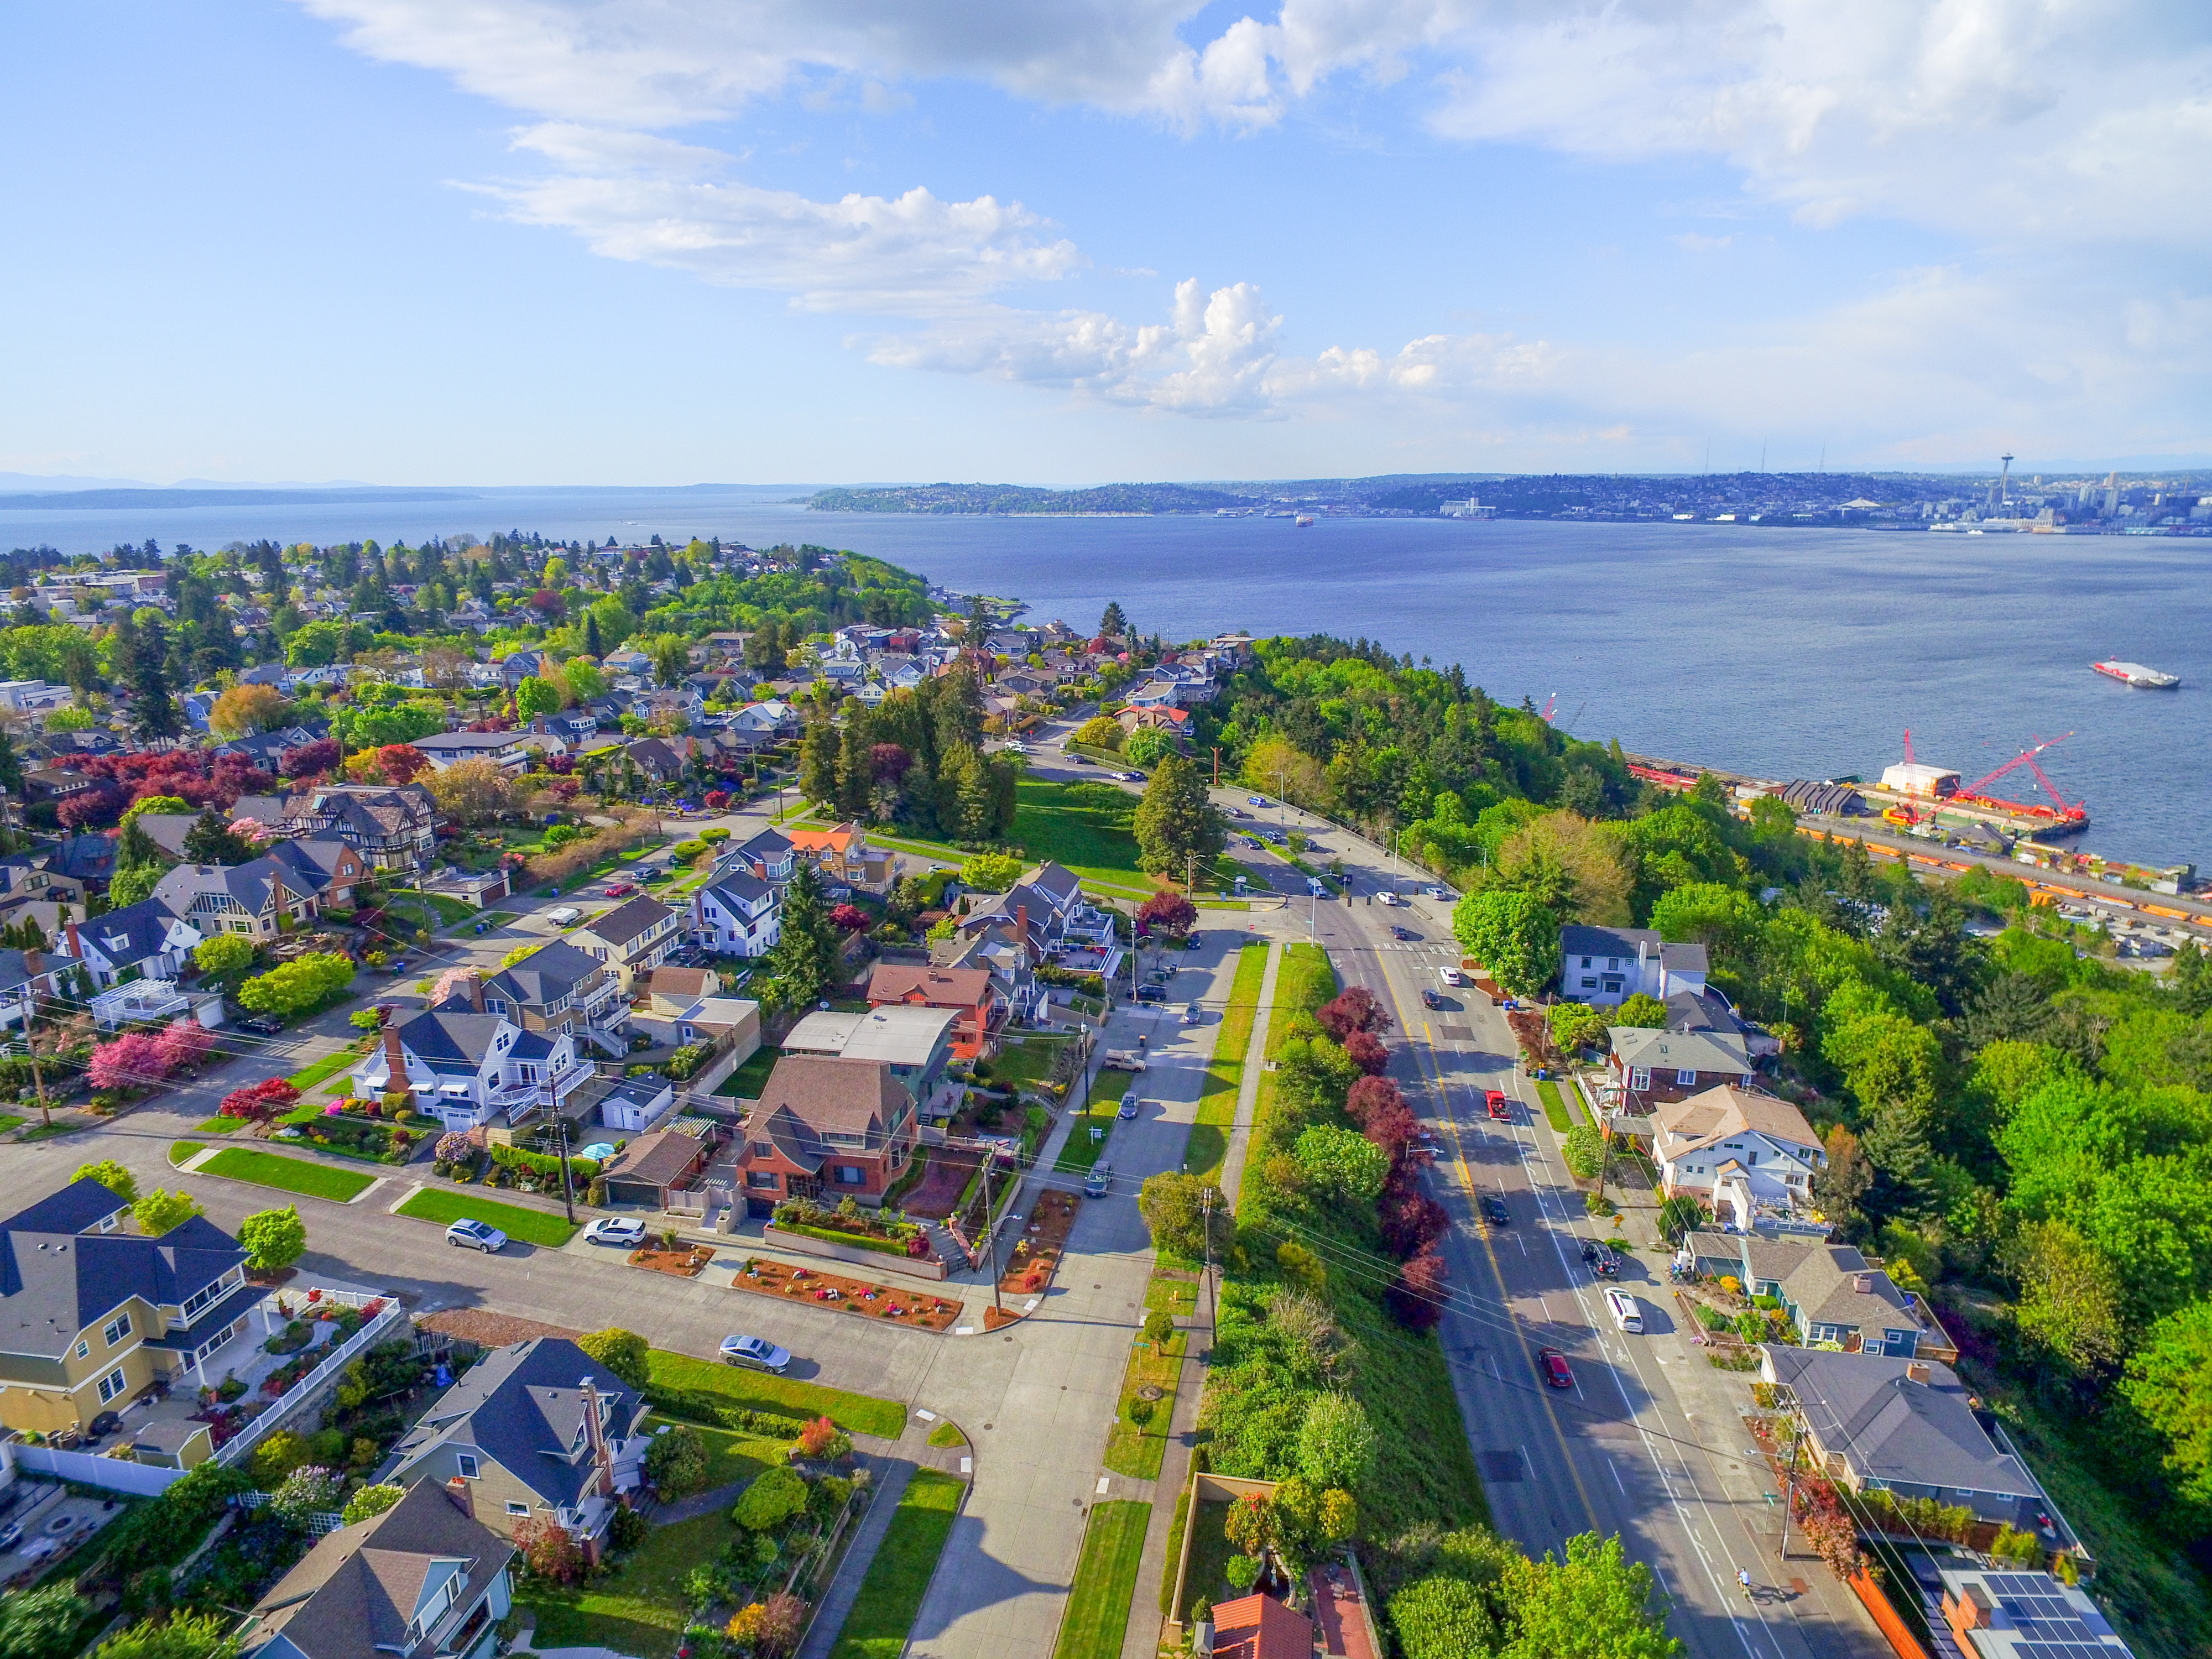 An aerial view of West Seattle and the Puget Sound waterfront on a clear, sunny day.